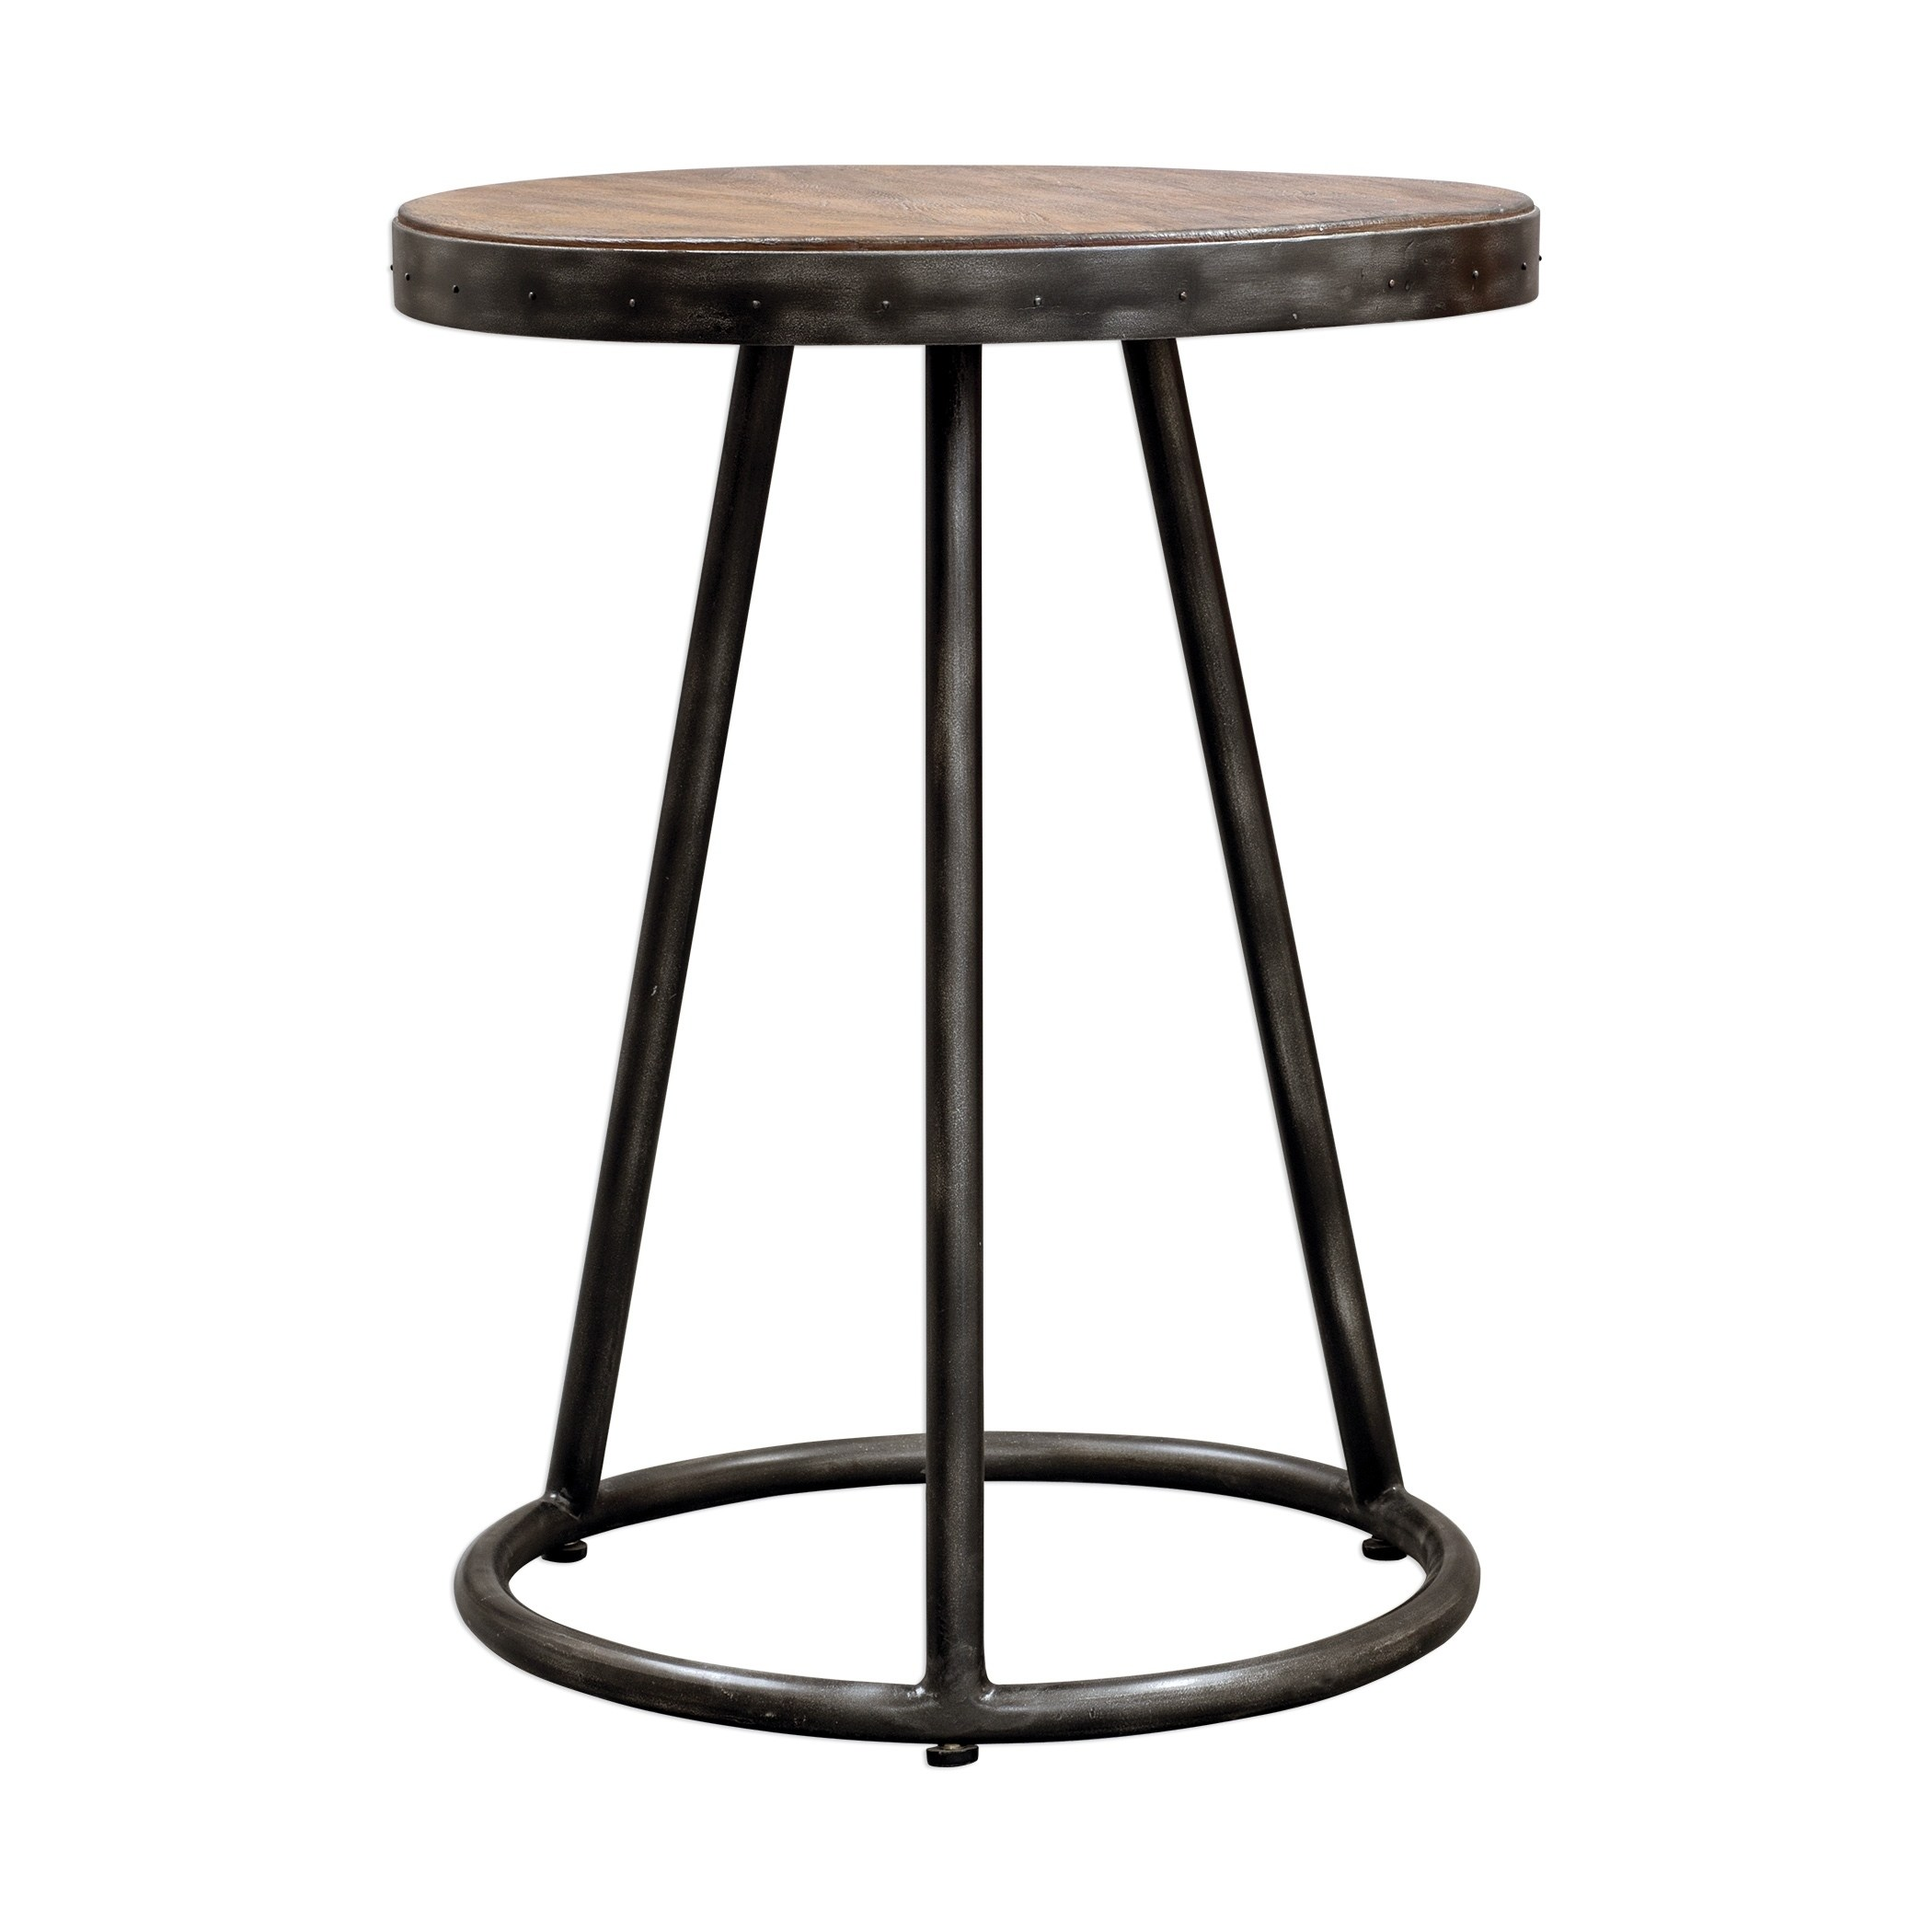 uttermost hector light grey and aged steel round accent table wood free shipping today bunnings outdoor seating samuelle end square cherry coffee making rustic front door